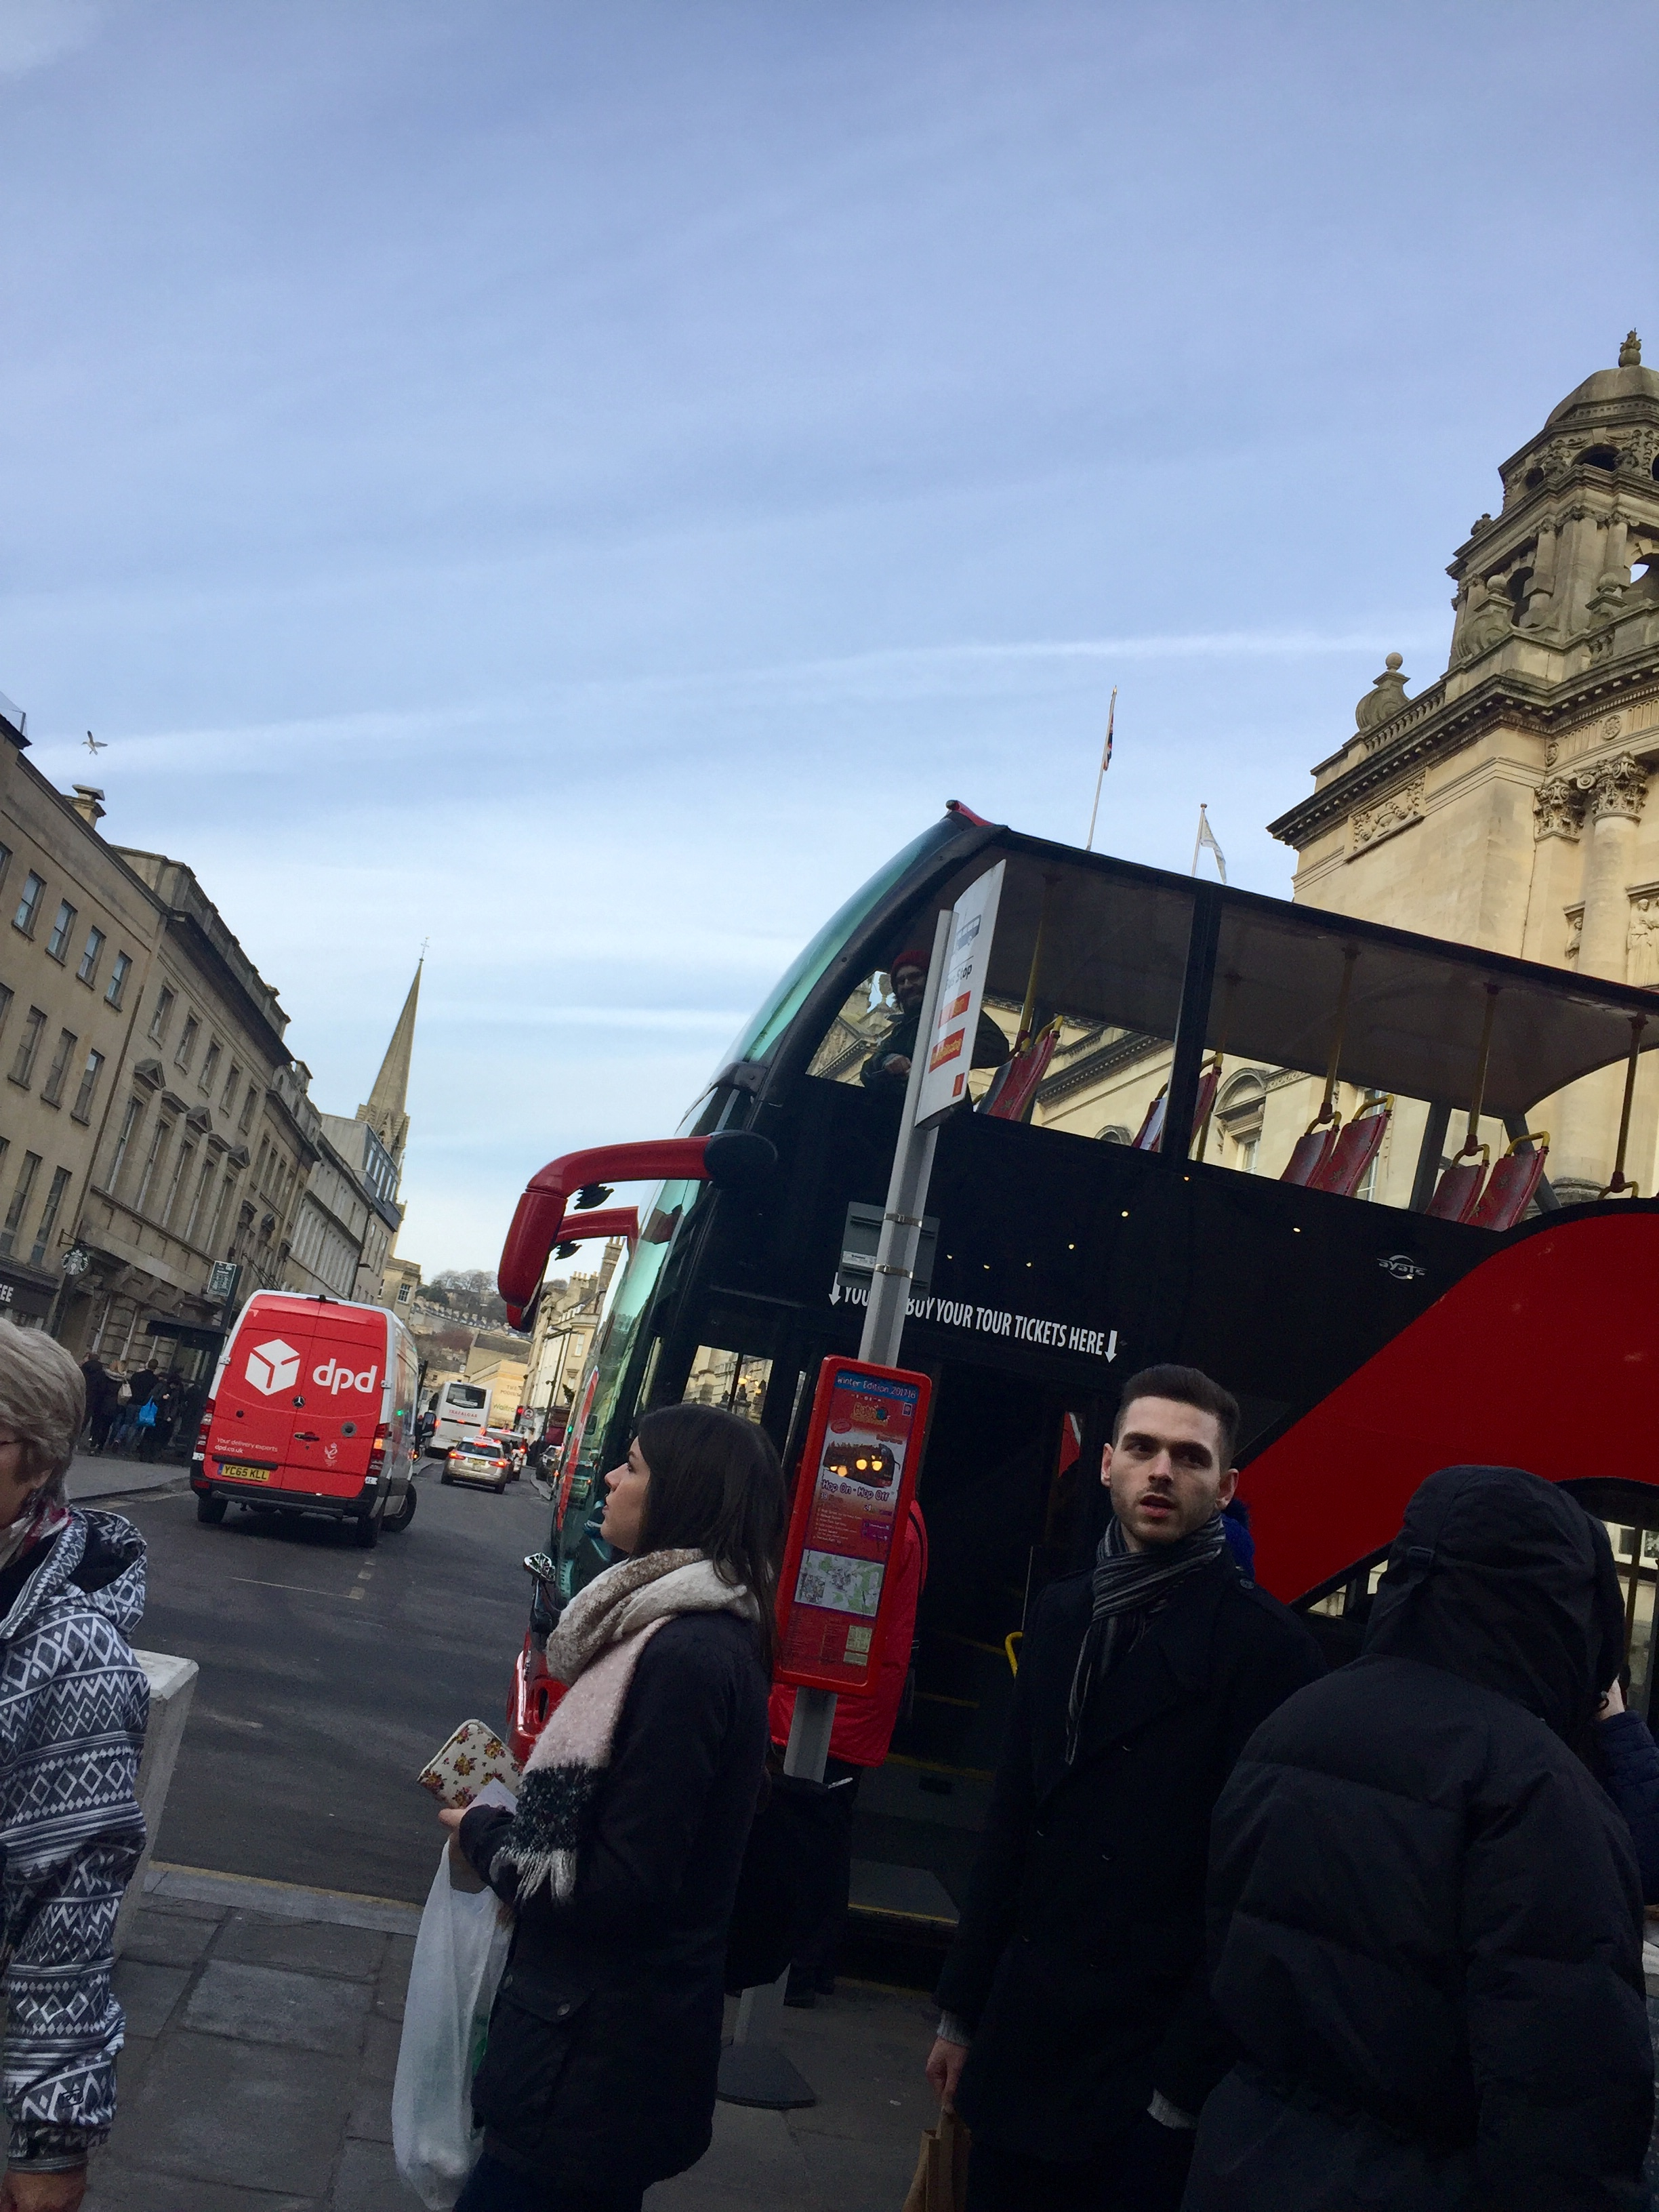 Here's a picture of the bus, if you look closely you can see Luc in the window!